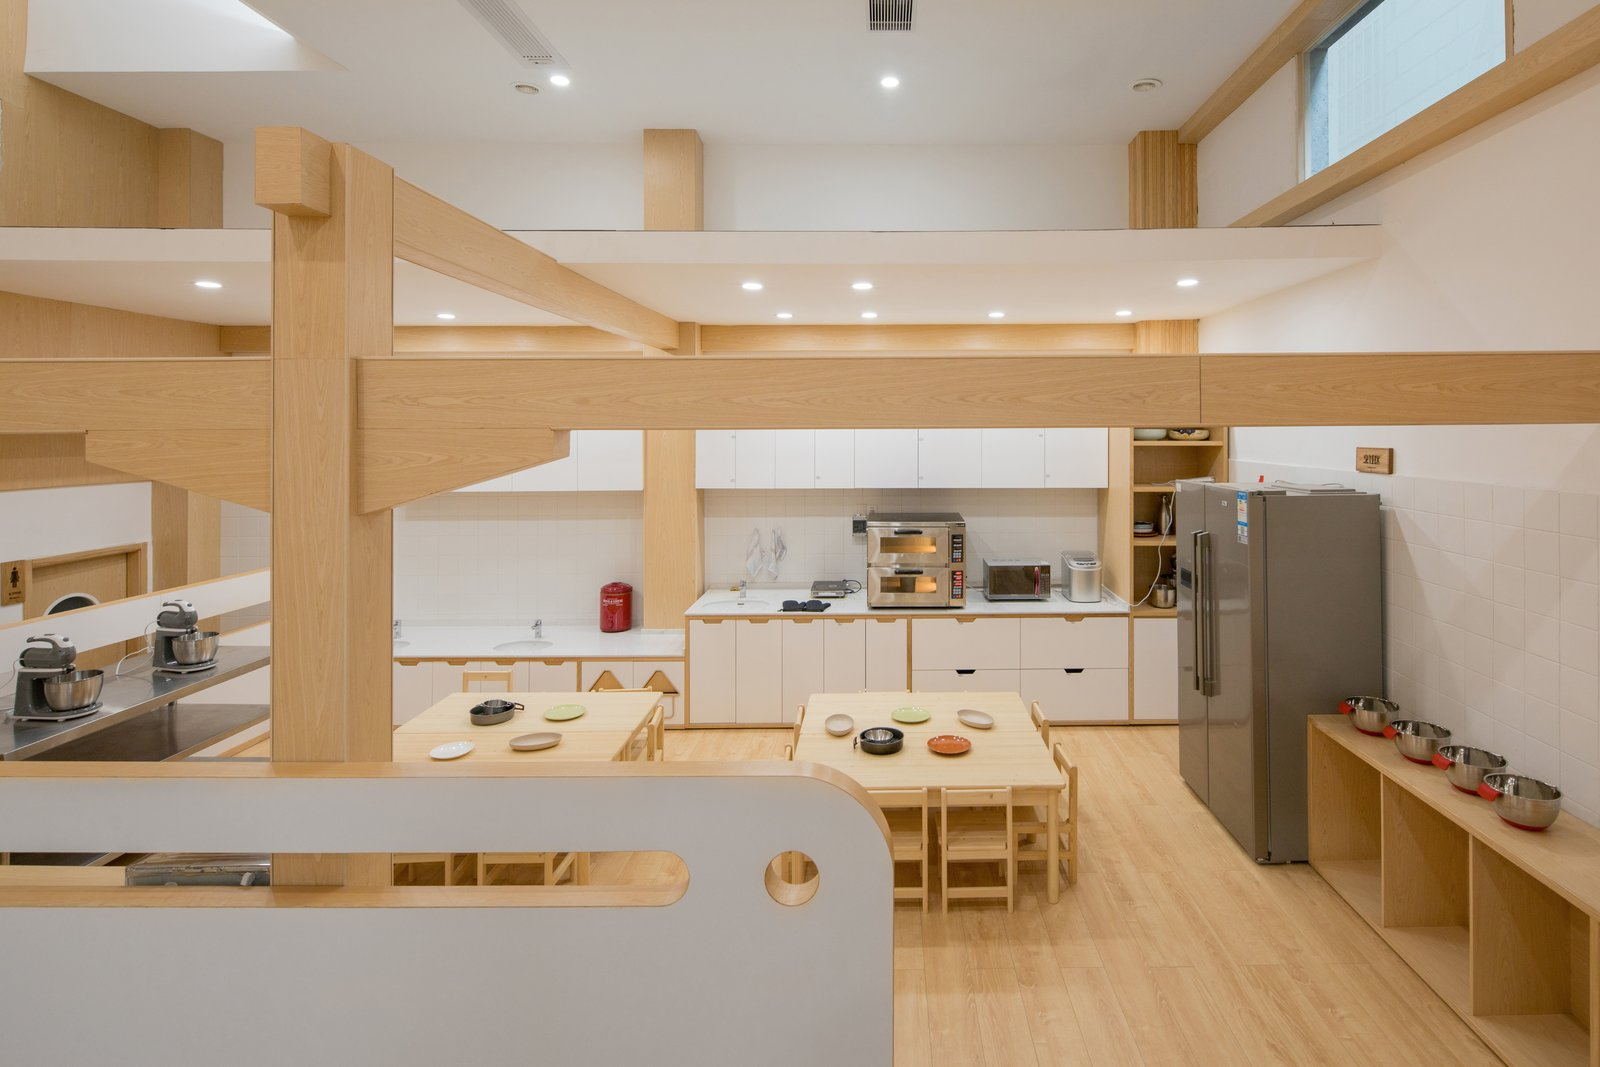 Kitchen, Recessed Lighting, Microwave, Refrigerator, Laminate Counter, Undermount Sink, Light Hardwood Floor, White Cabinet, and Wood Cabinet A cooking classroom contributes to the students' well-rounded education.   Best Photos from This Chinese Kindergarten Takes Play Seriously With an Outdoor Climbing Wall